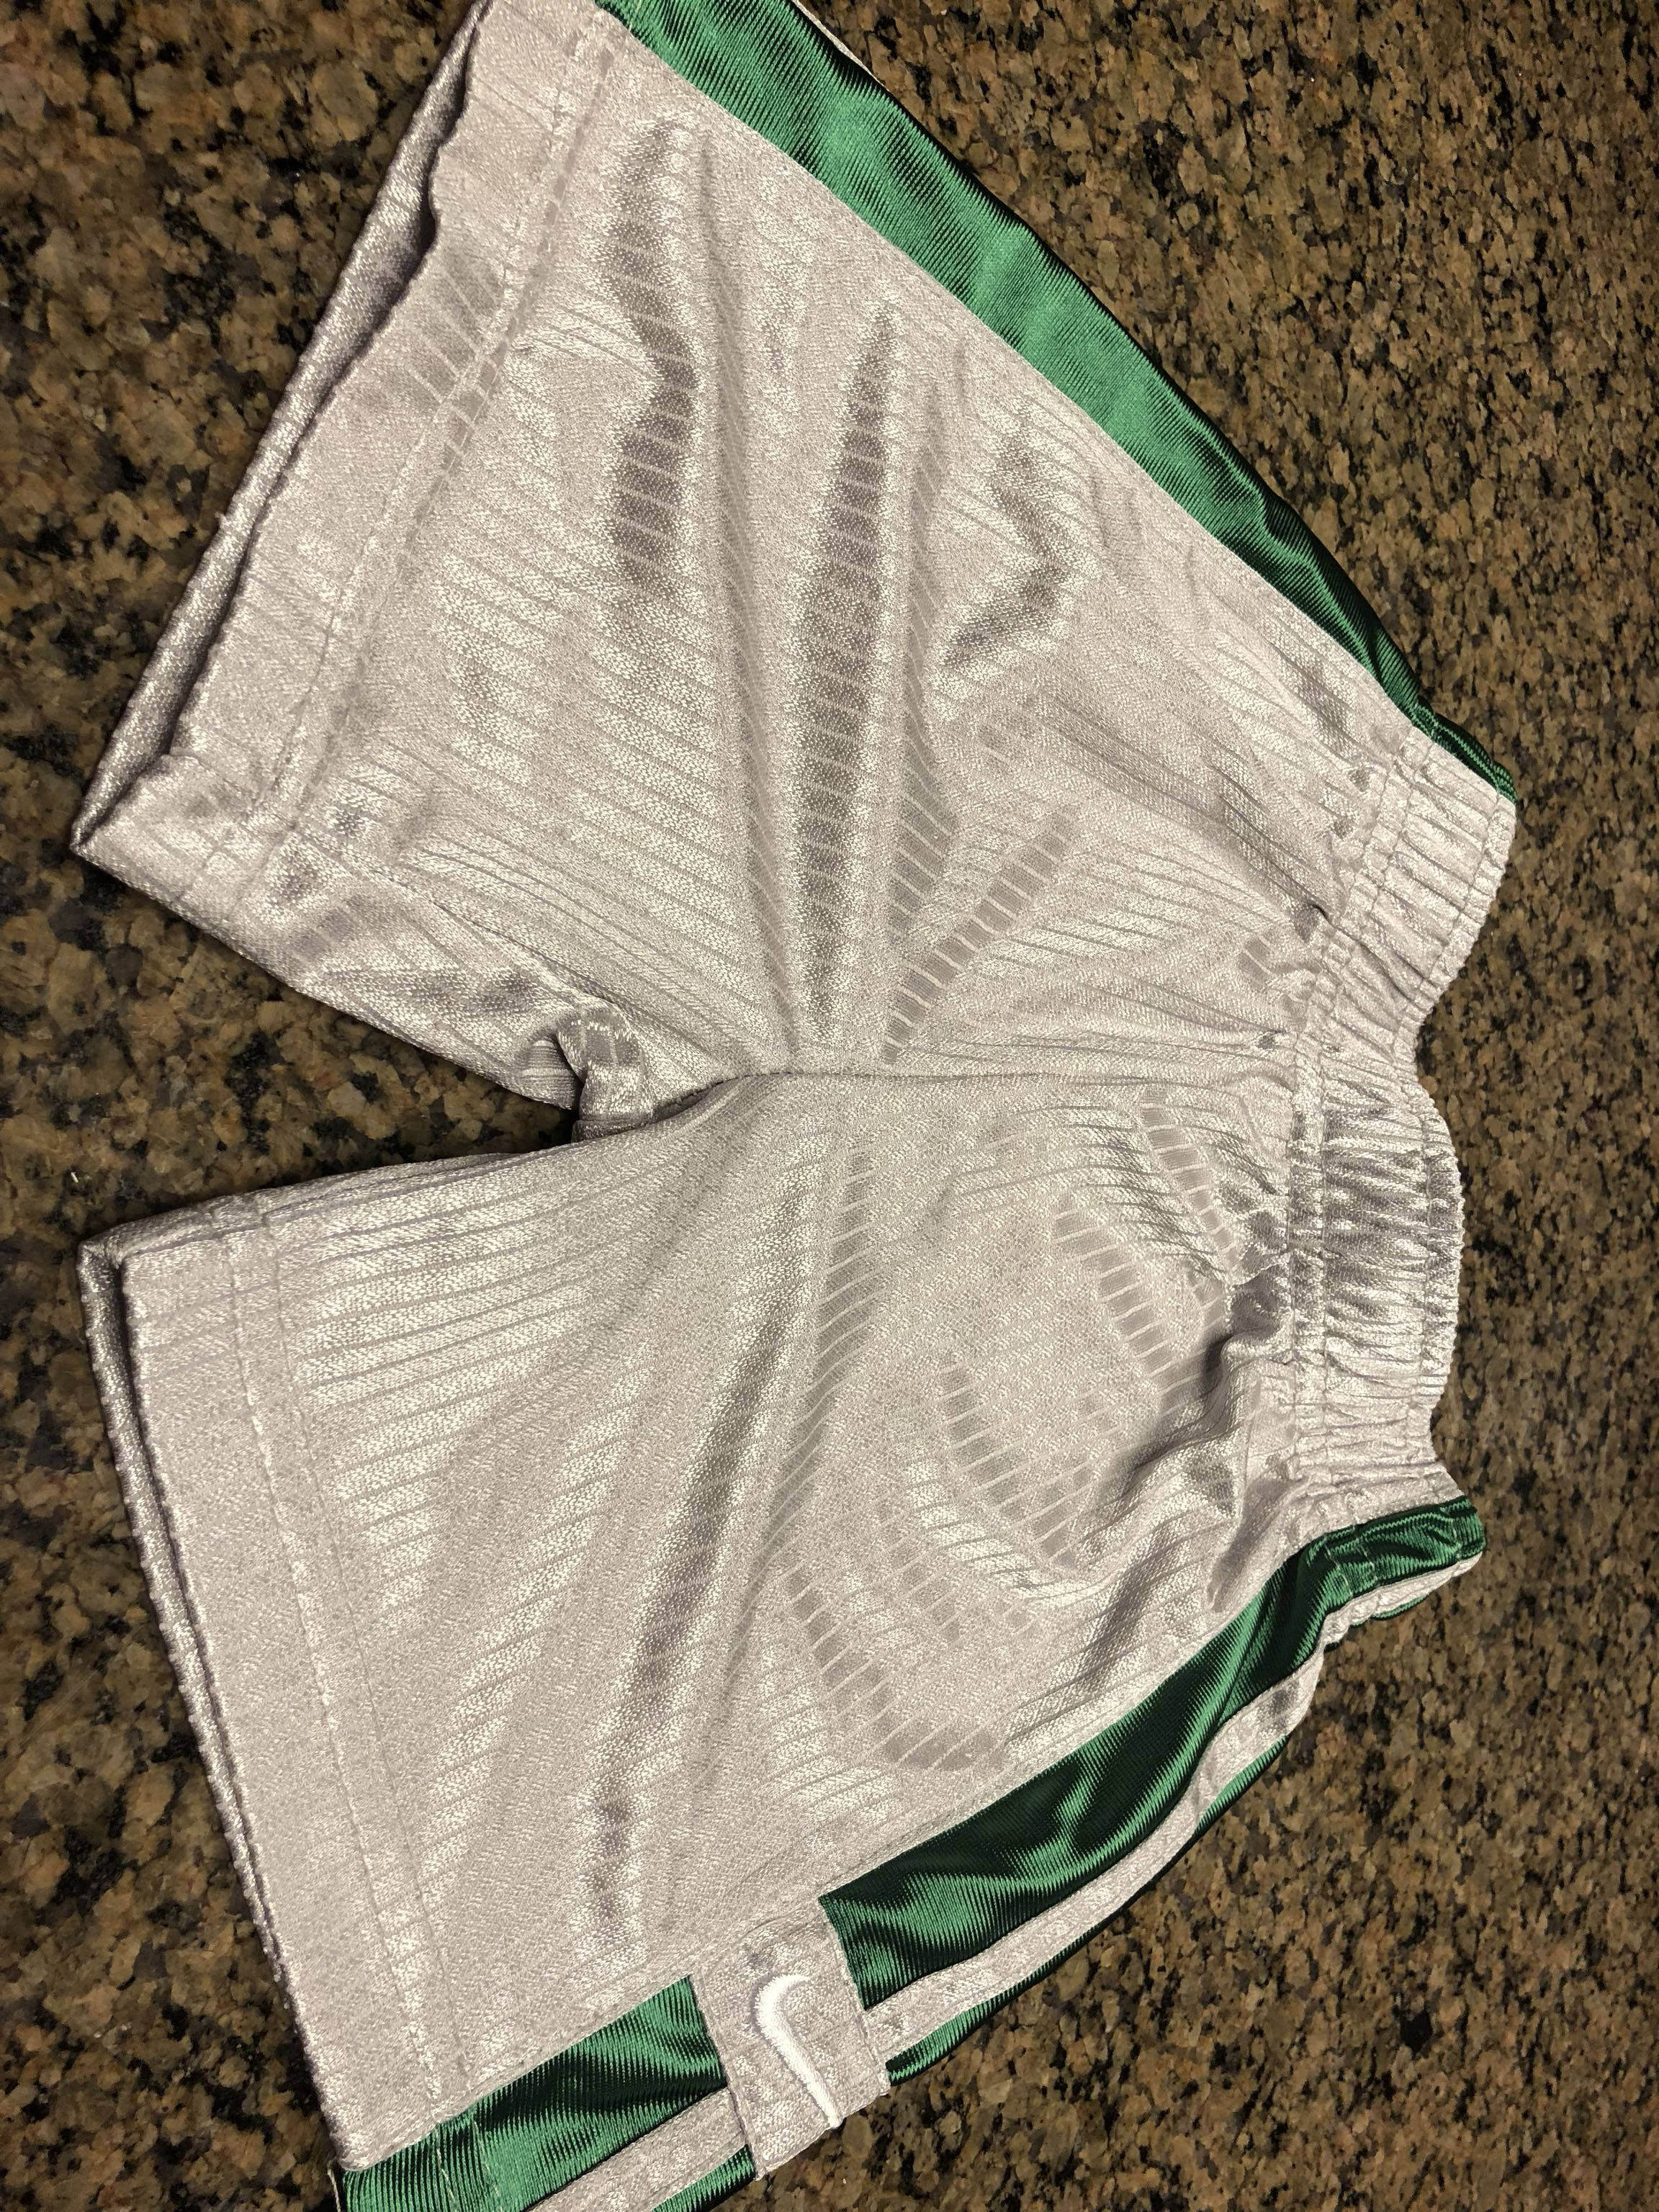 Silver Nike shorts in EUC. Size 18 months. Avery Park.